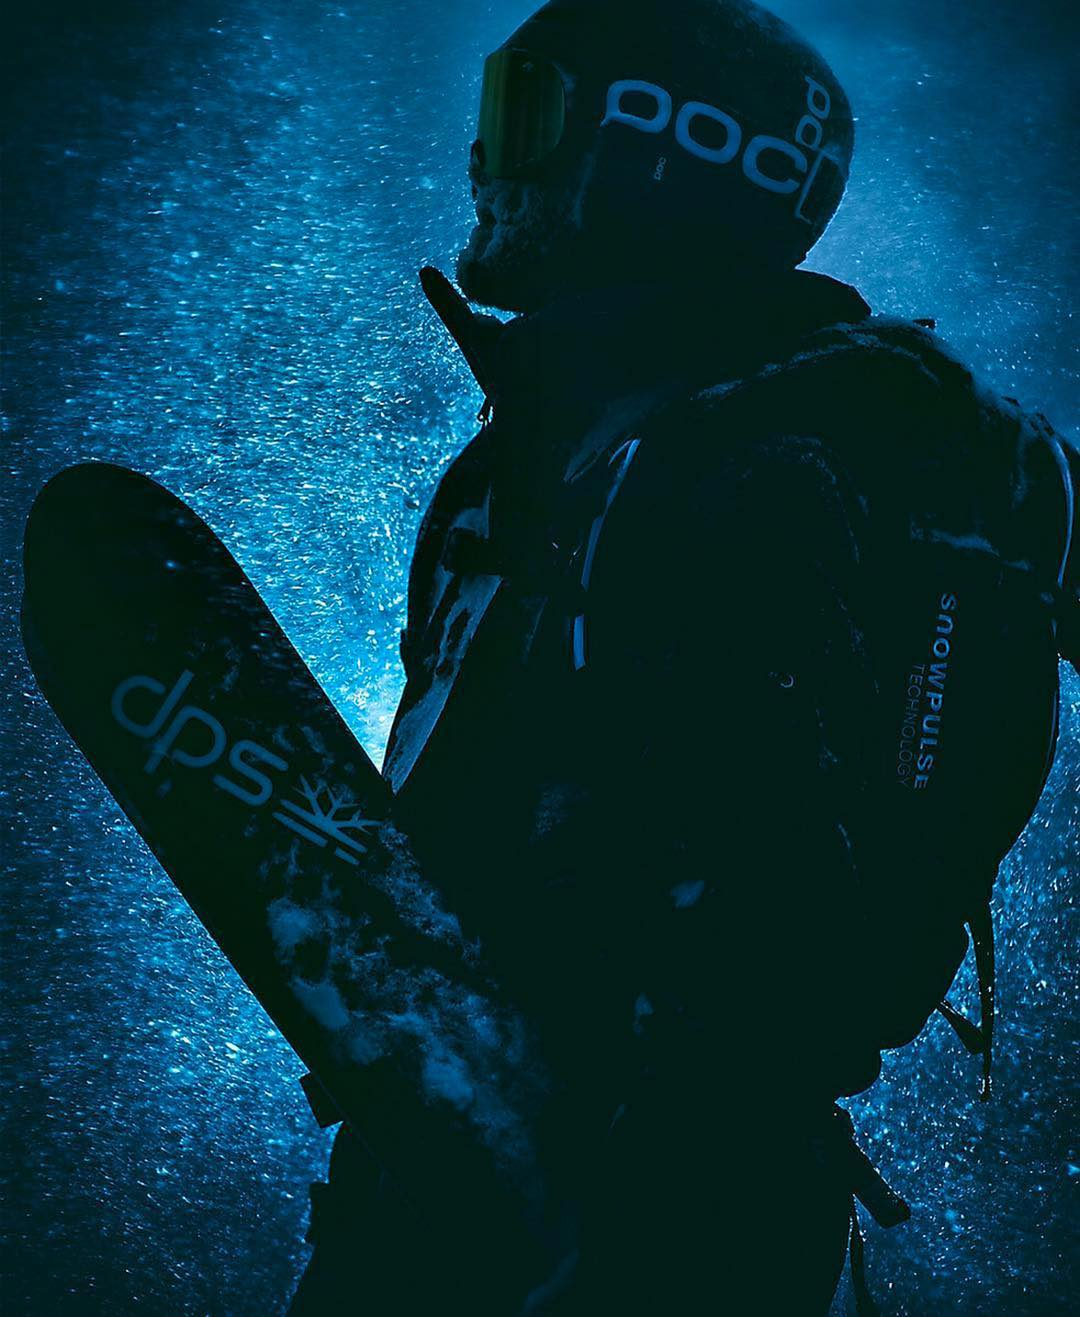 """Claudio Pittin goes into the mystic for """"Dream Book 2017"""" a magazine published by Skiservice Corvatsch Sport Shop in Bernina, Engadin, CH. @gian_giovanoli behind the lens #dpsskis"""